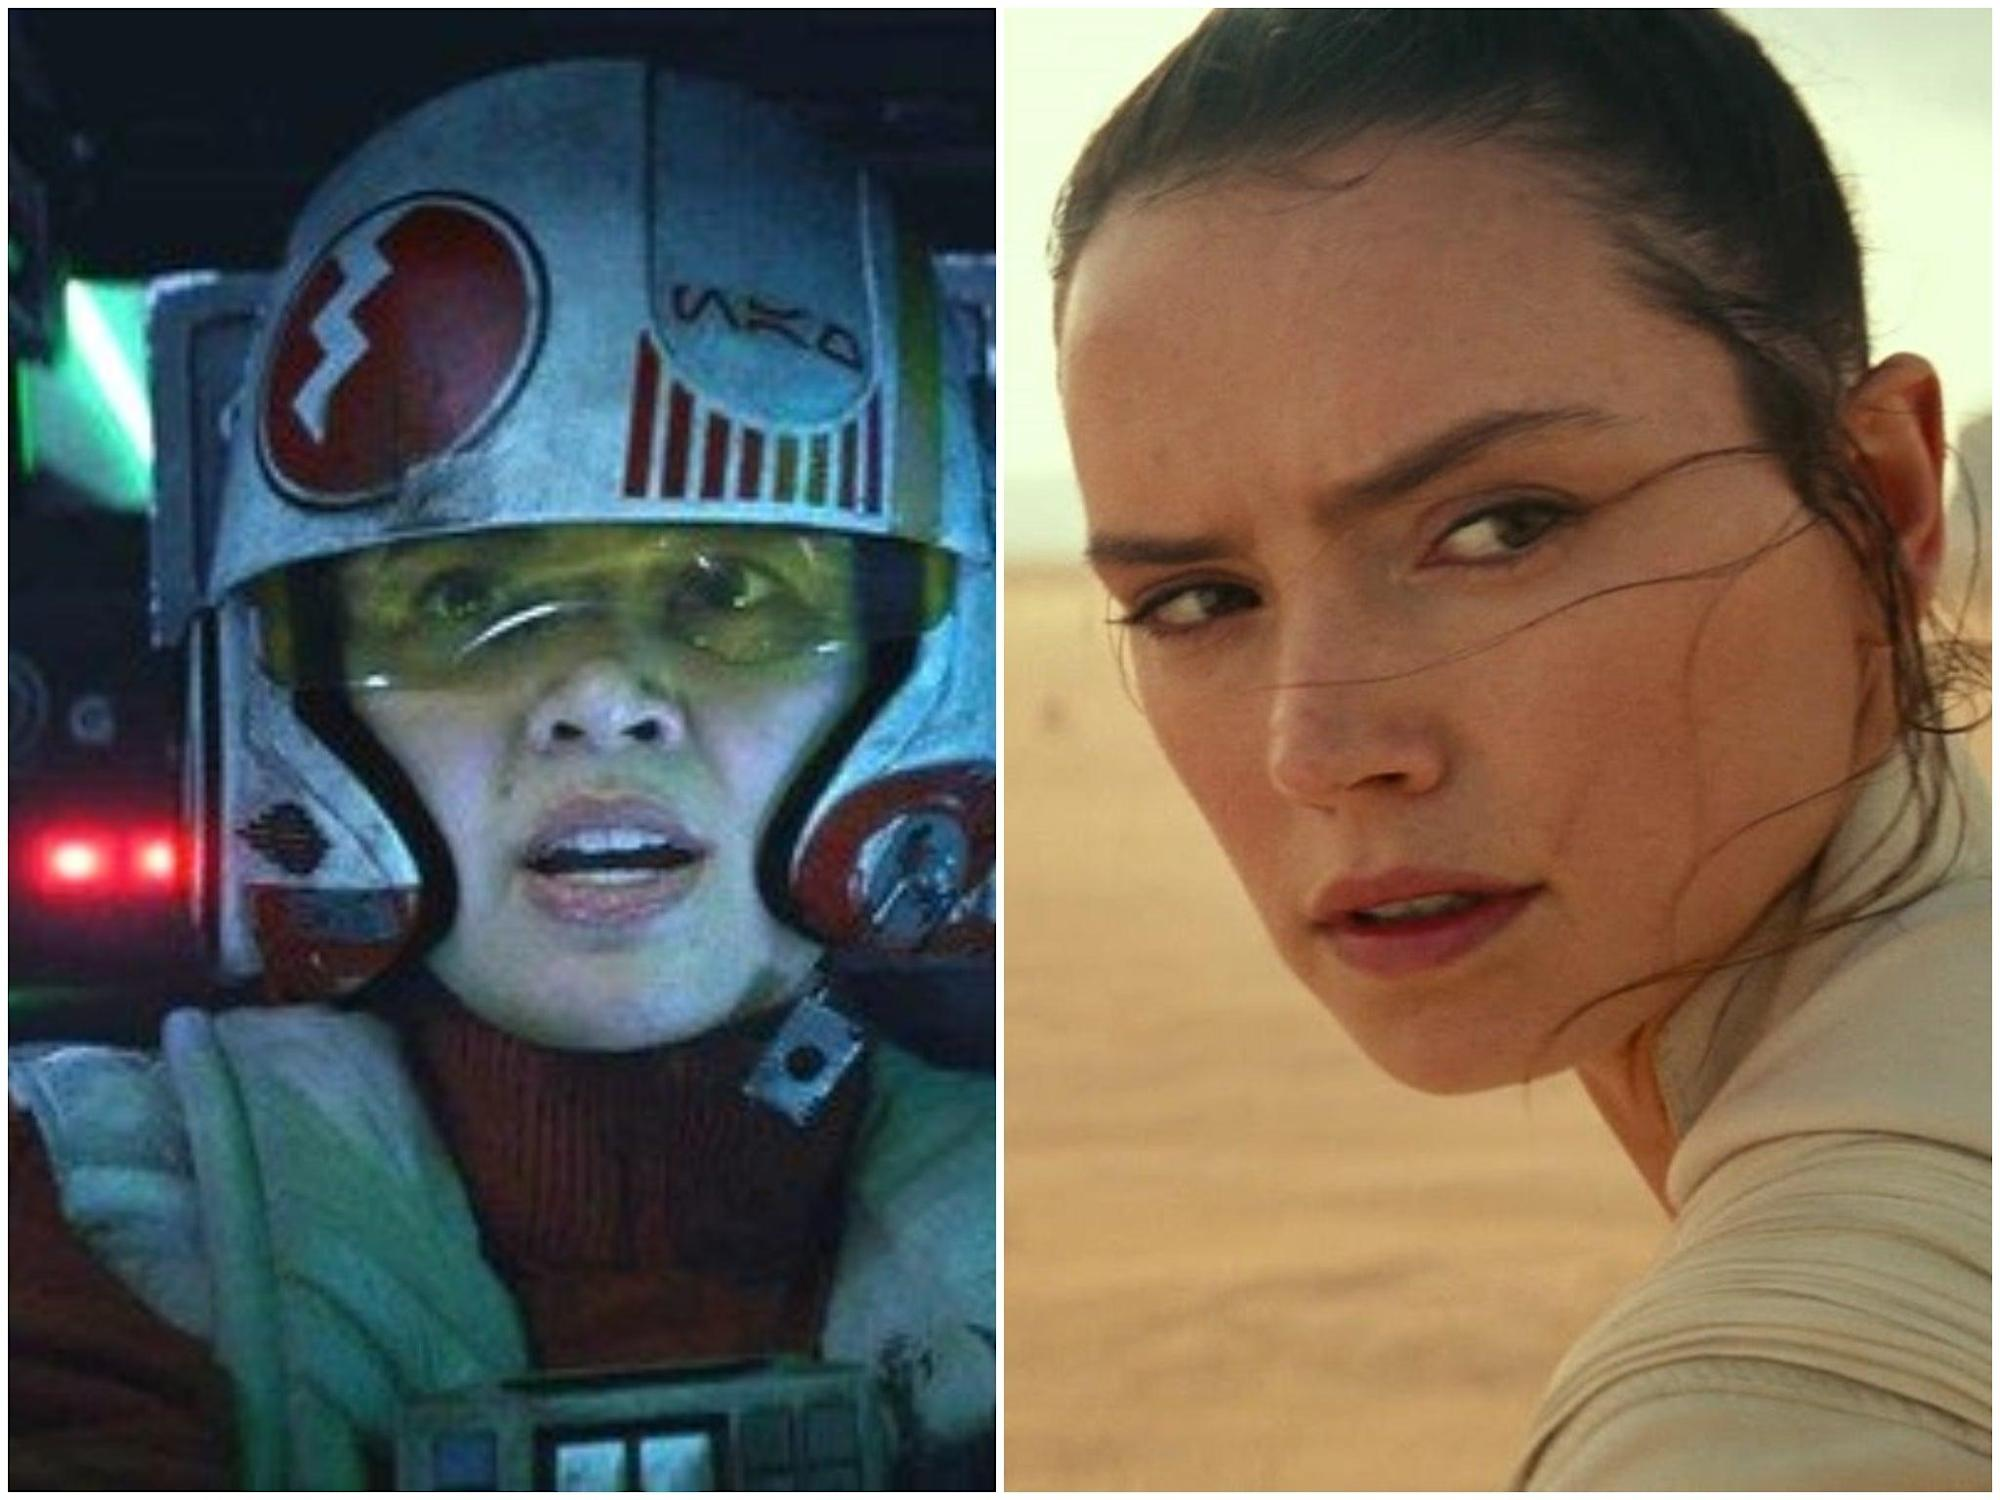 Star Wars: Jessica Henwick says it was 'very hard' losing Rey role to Daisy Ridley after 'arduous' six-month audition process